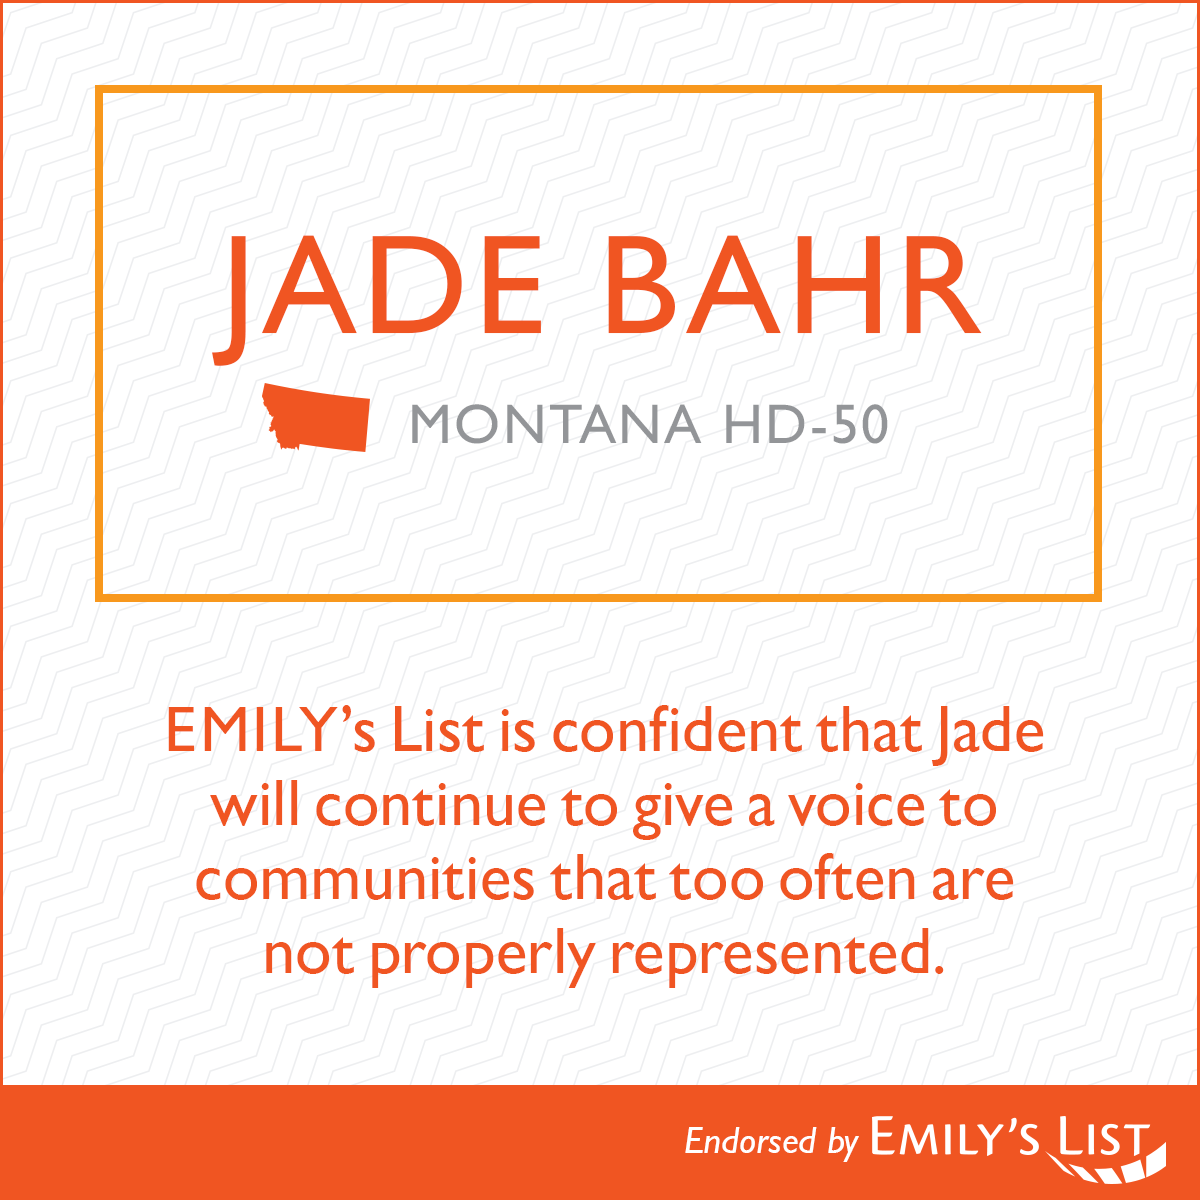 State-Local_Jade-Bahr.png